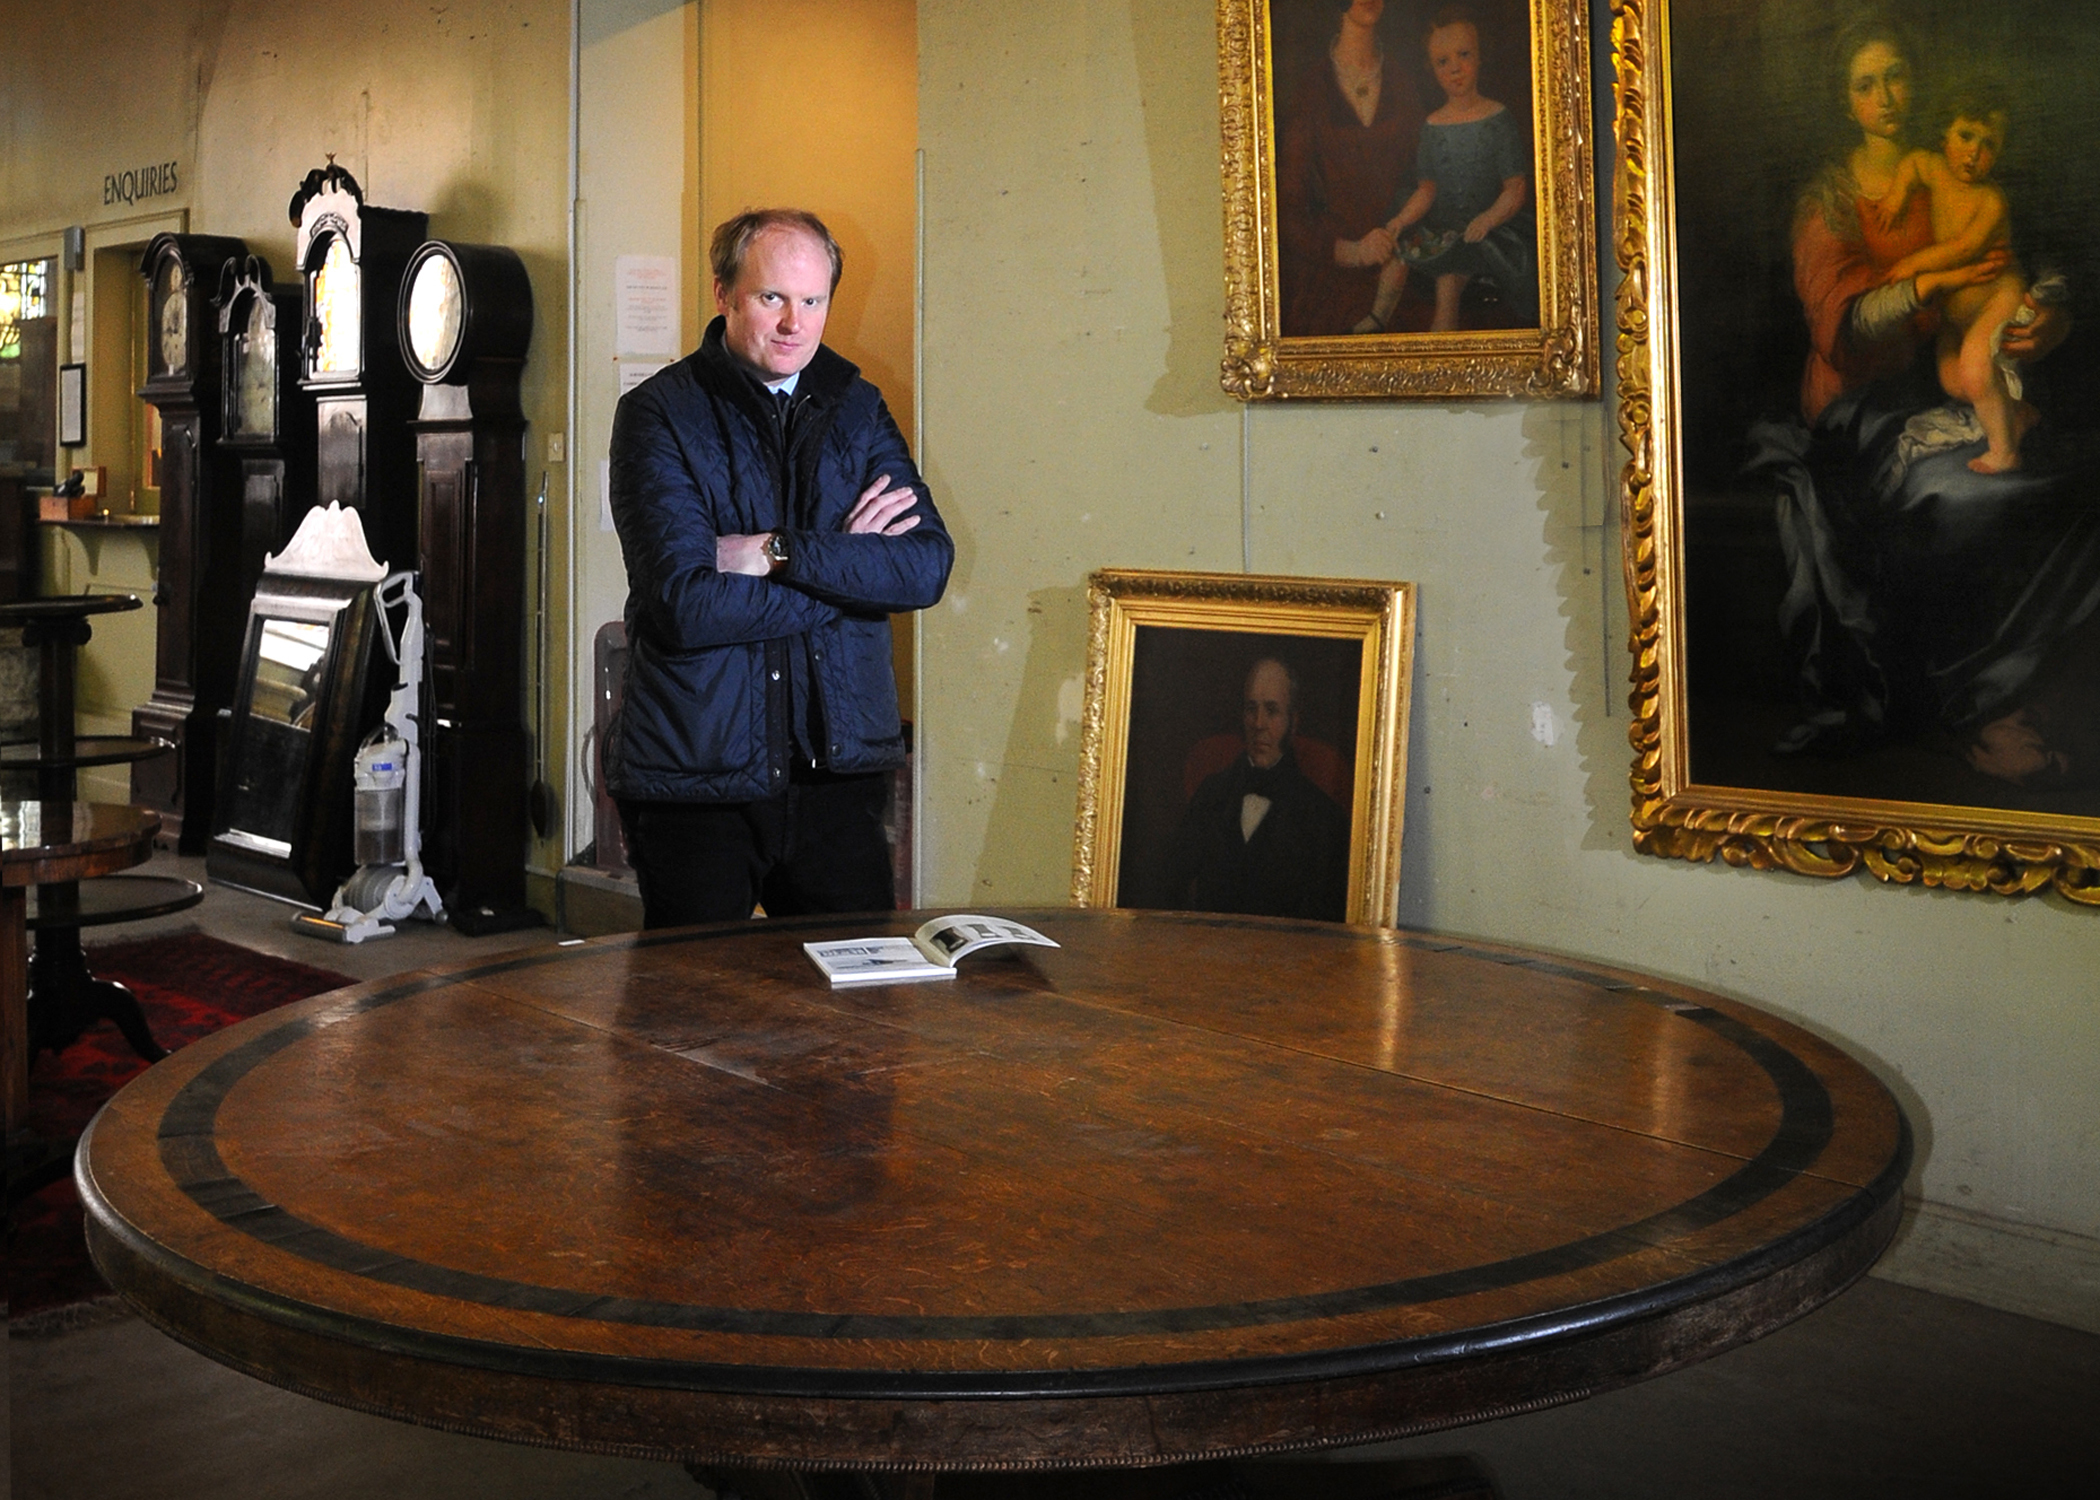 Perth Auctioneer Nick Burns with the William IV oak table.